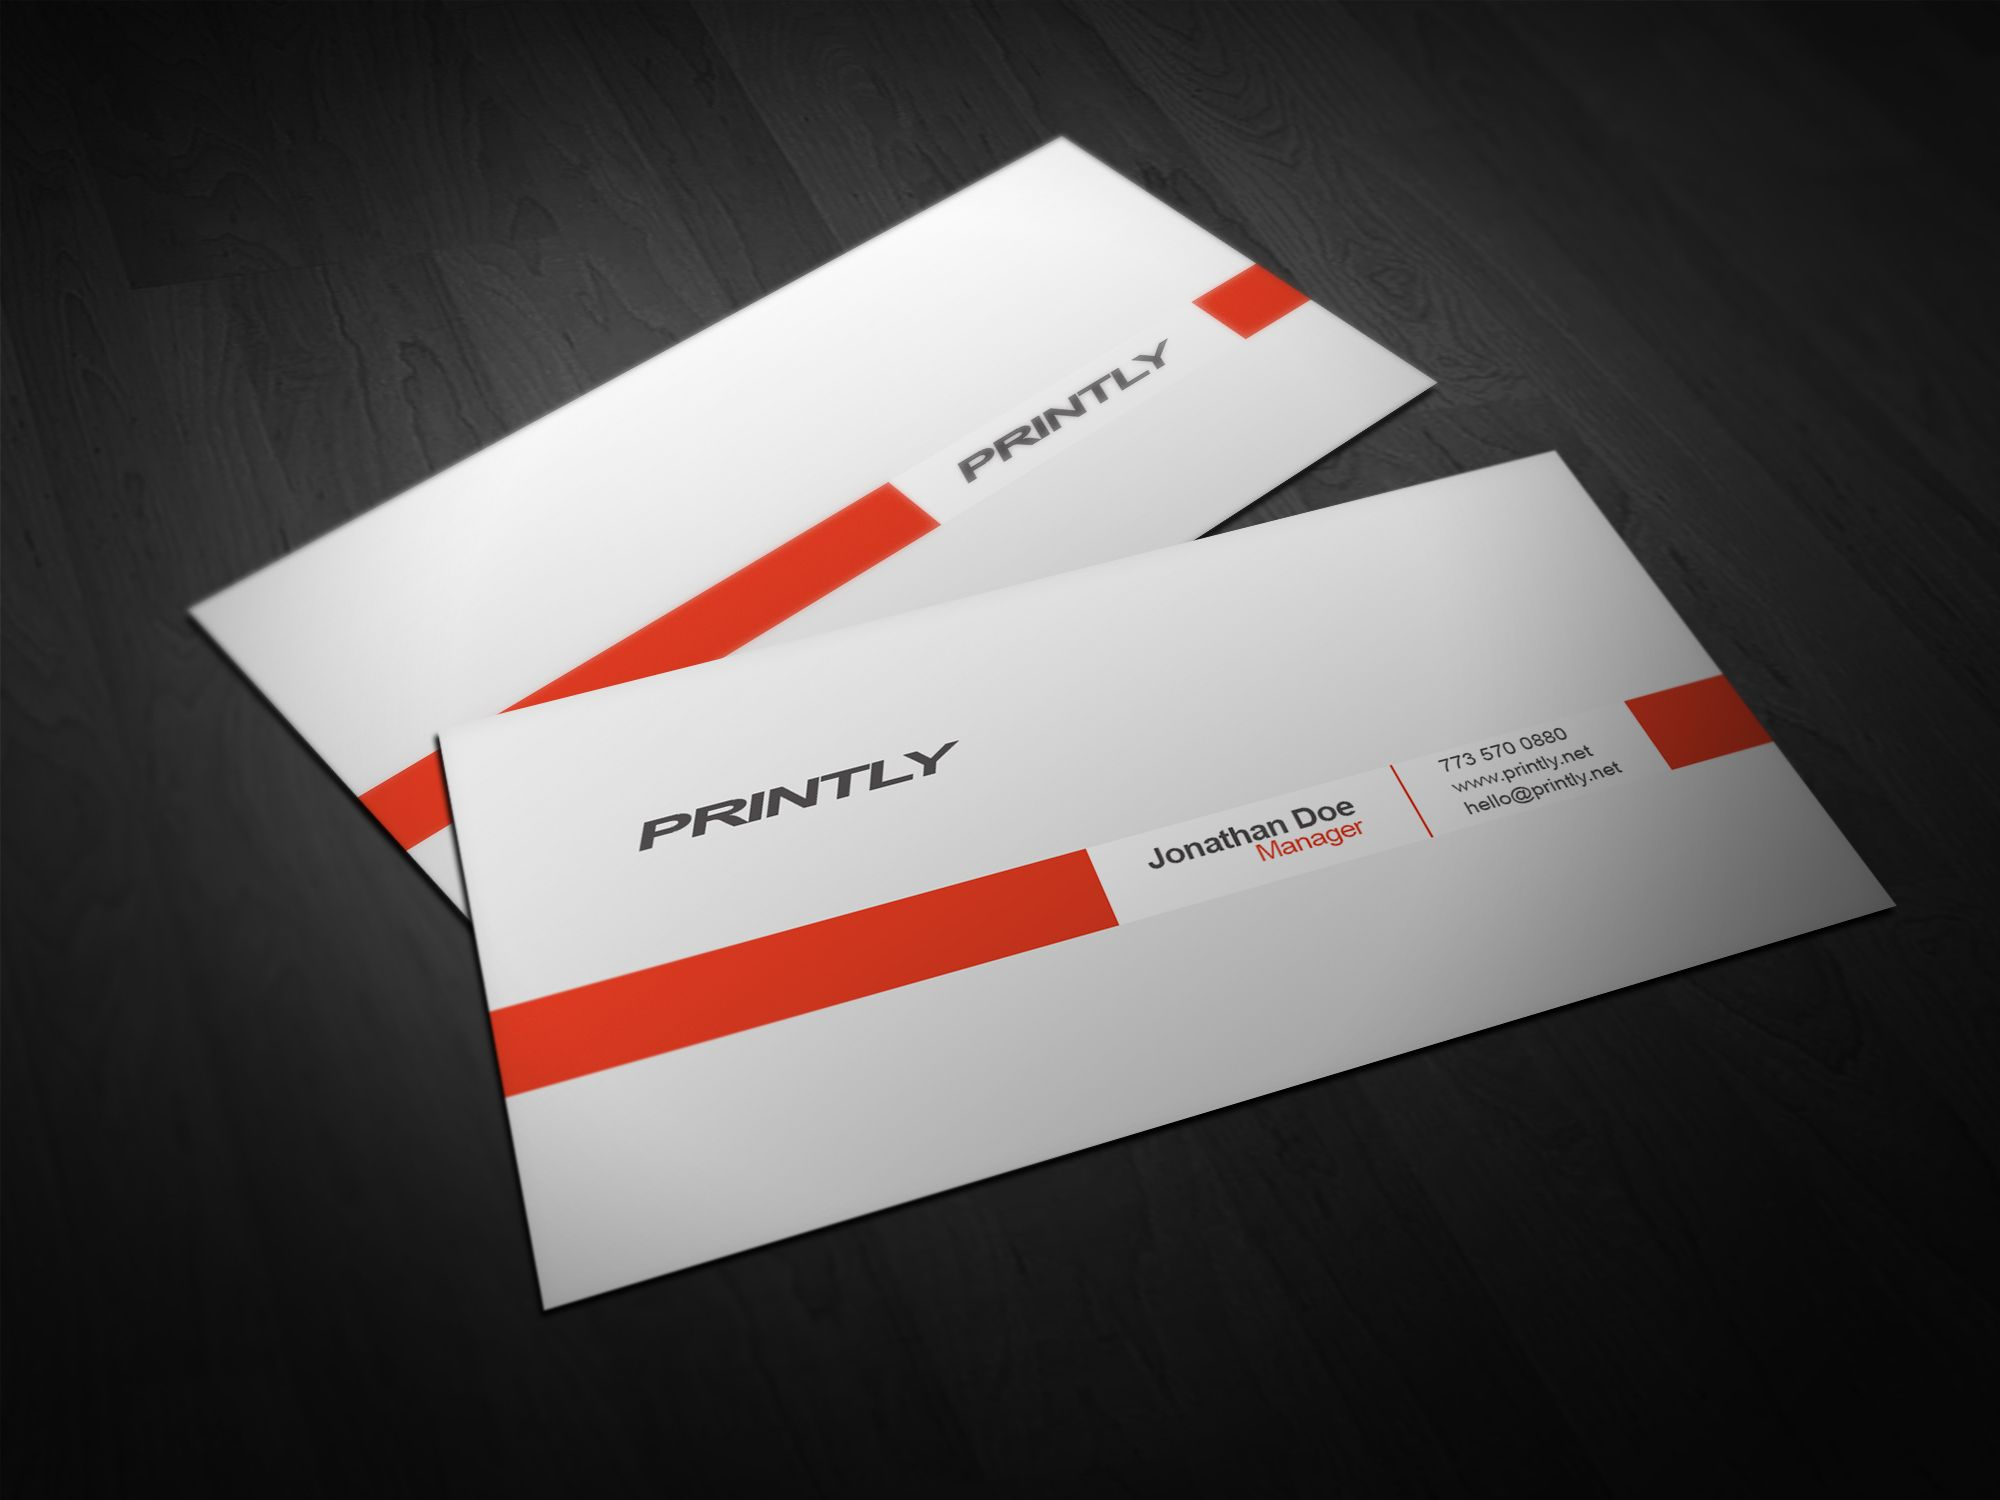 Free Printly PSD Business Card Template PRINTLY Design - Free business card template word